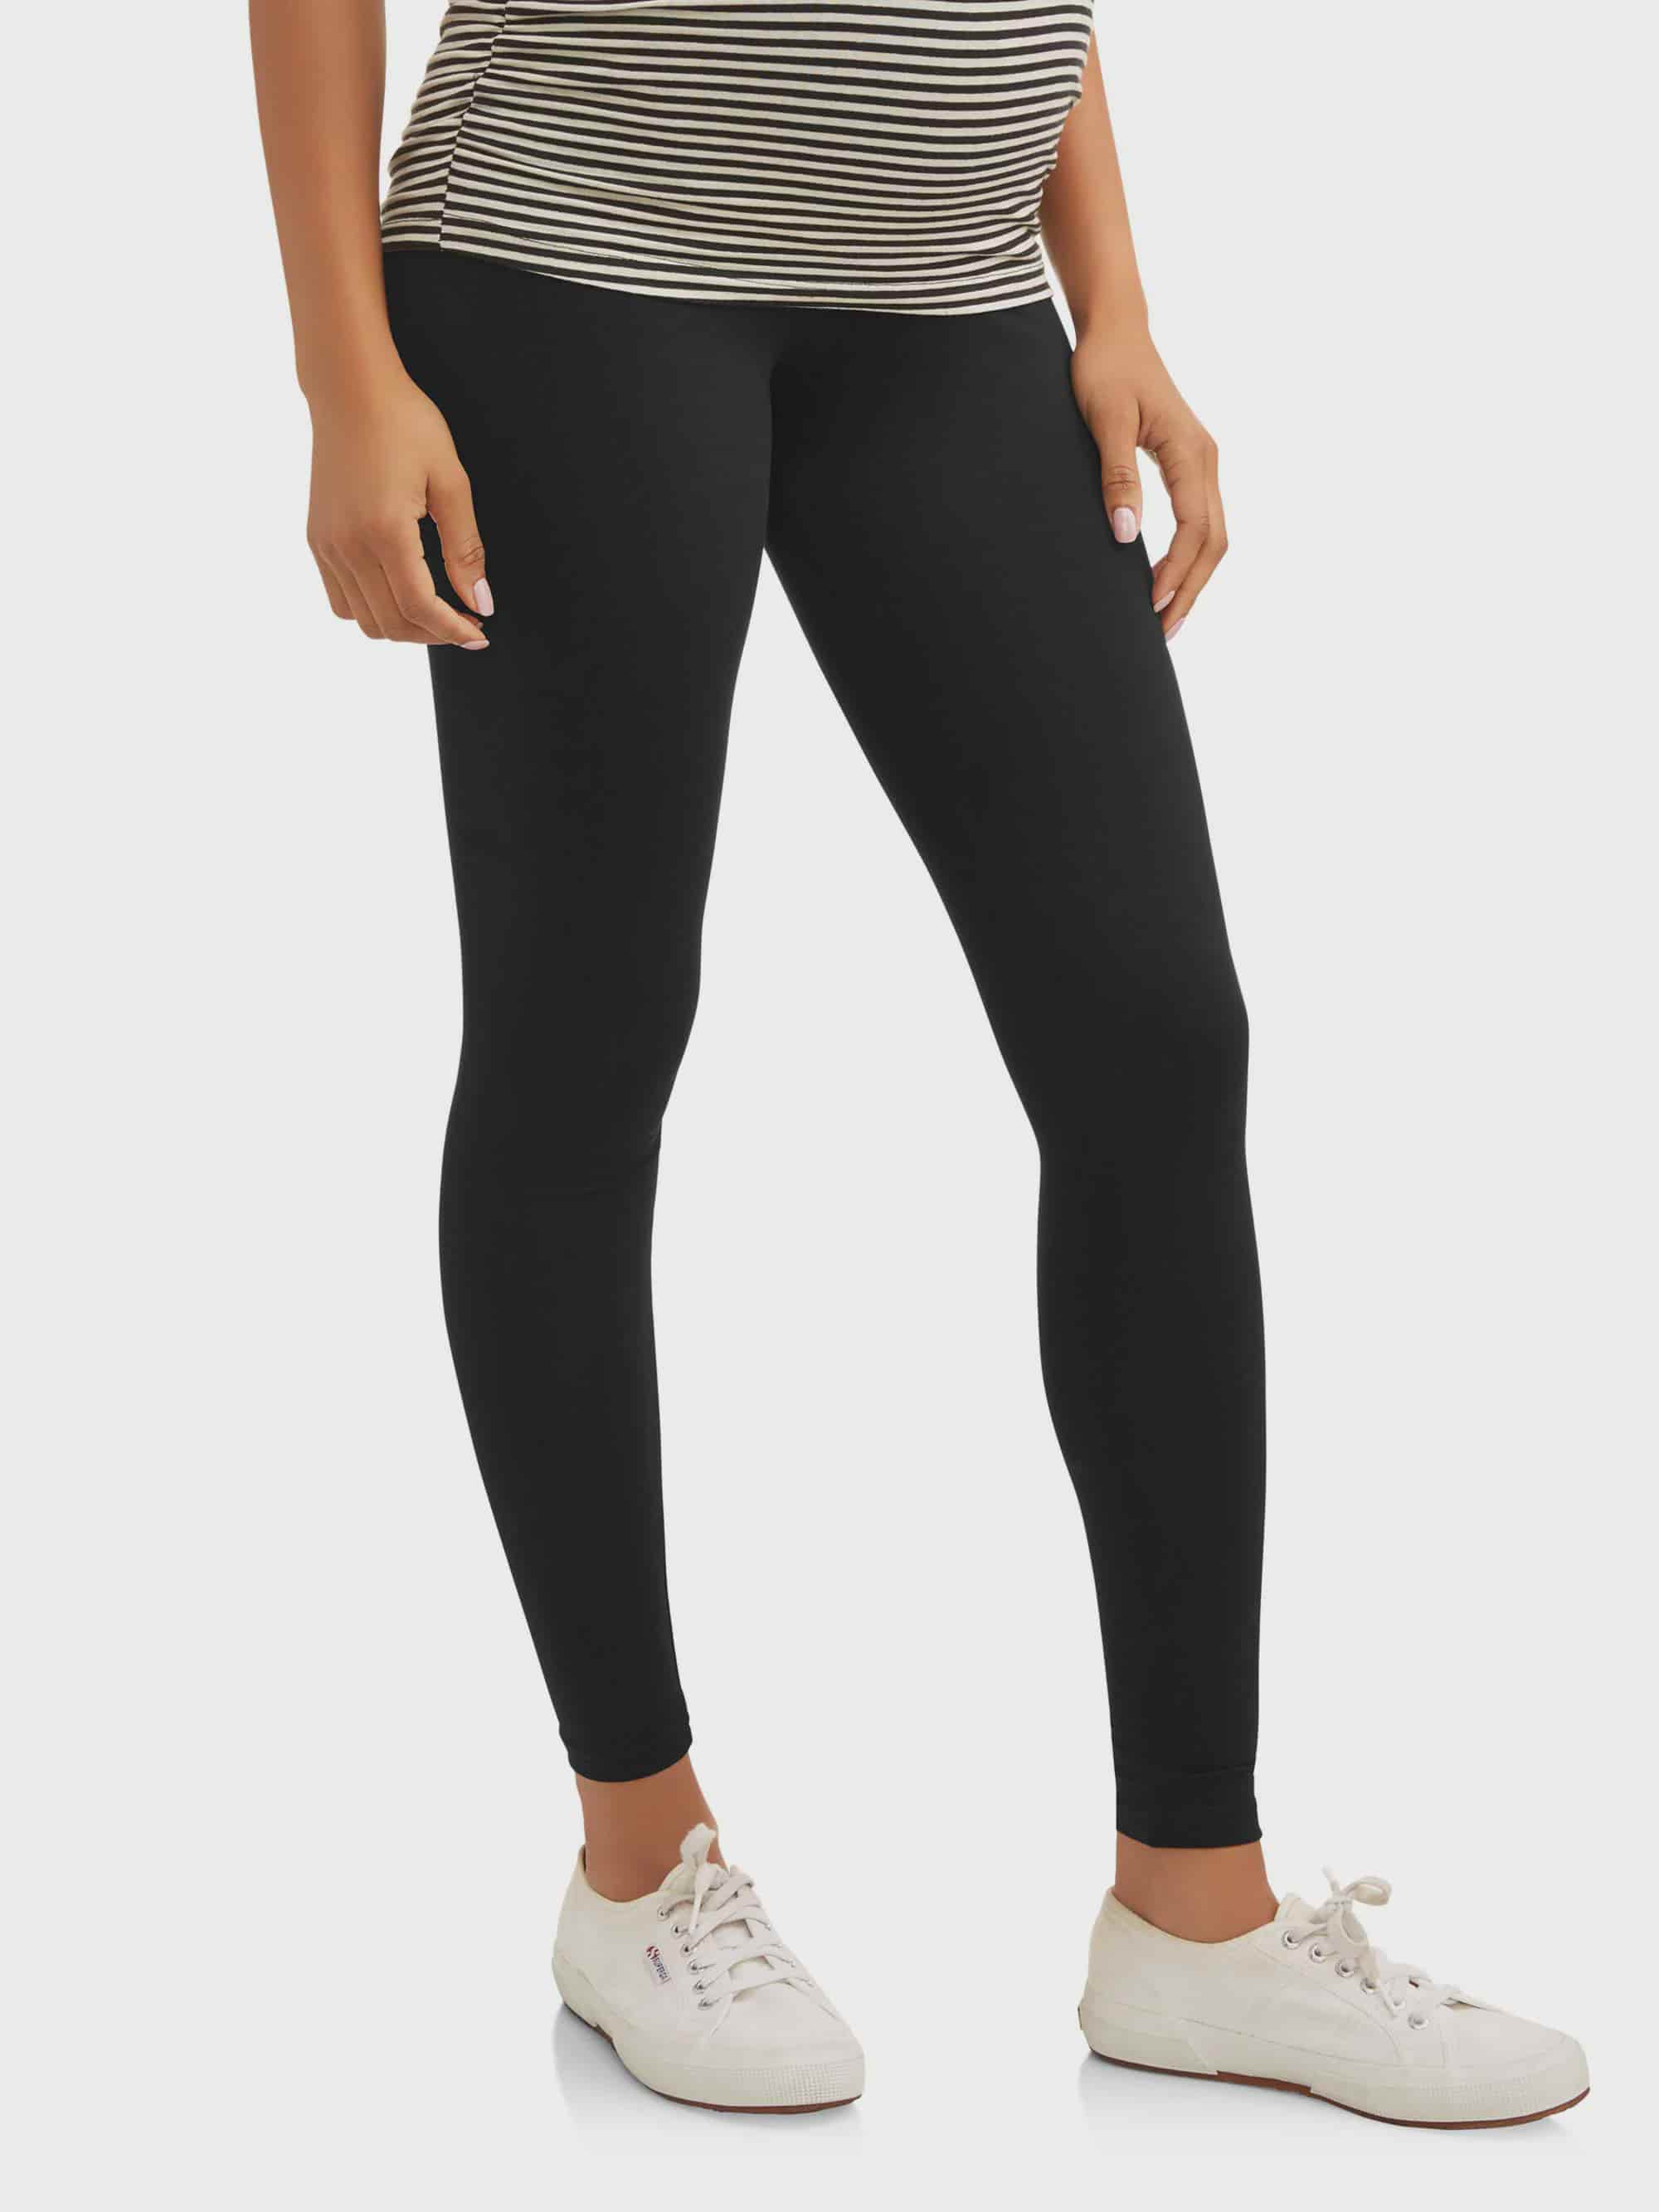 3a94c694eb4 Oh! Mamma - Full Panel Maternity Leggings -- Available in Plus Size -  Walmart.com